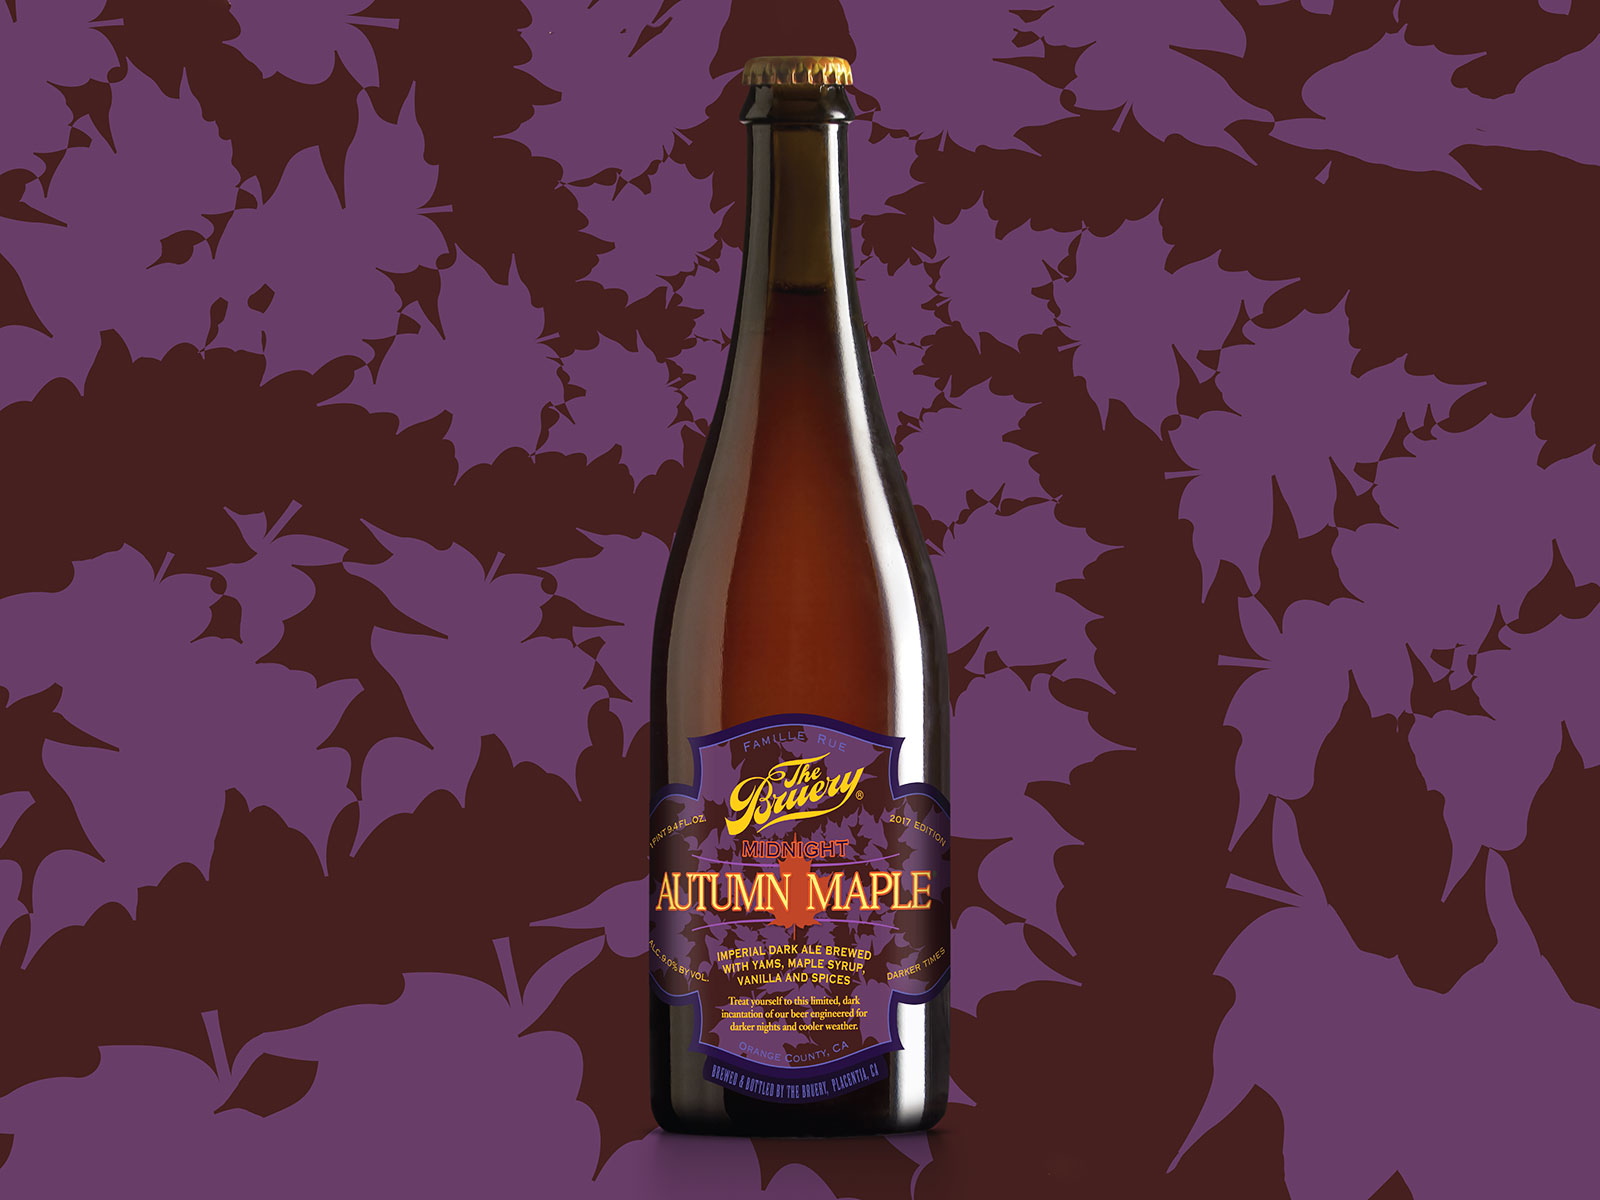 Autumn Maple by The Bruery